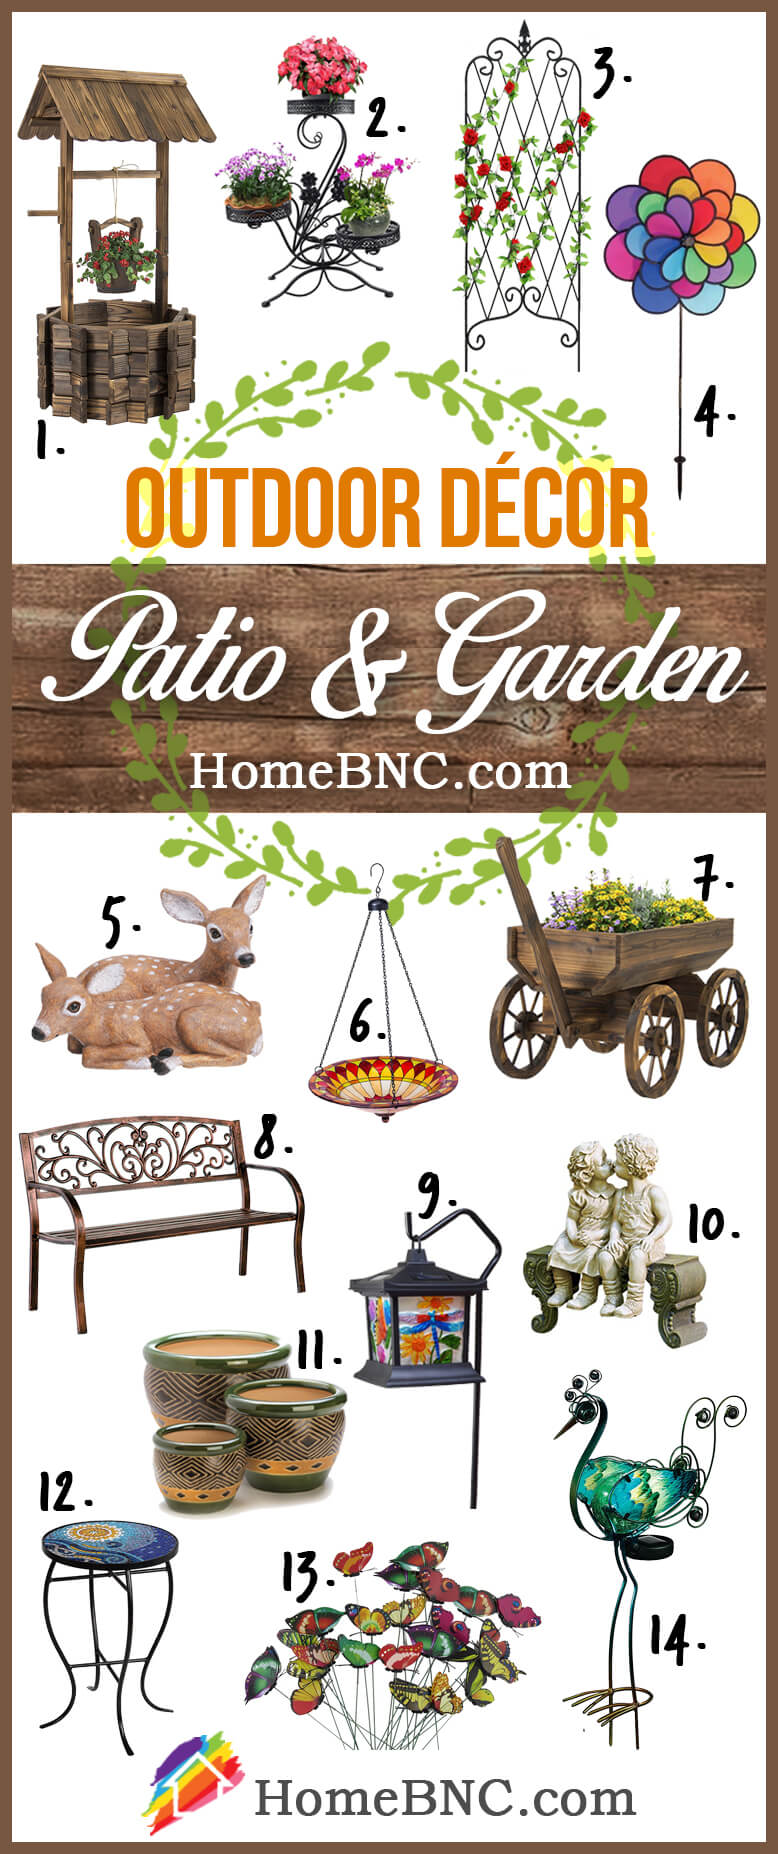 Patio and garden Outdoor Decoration Ideas